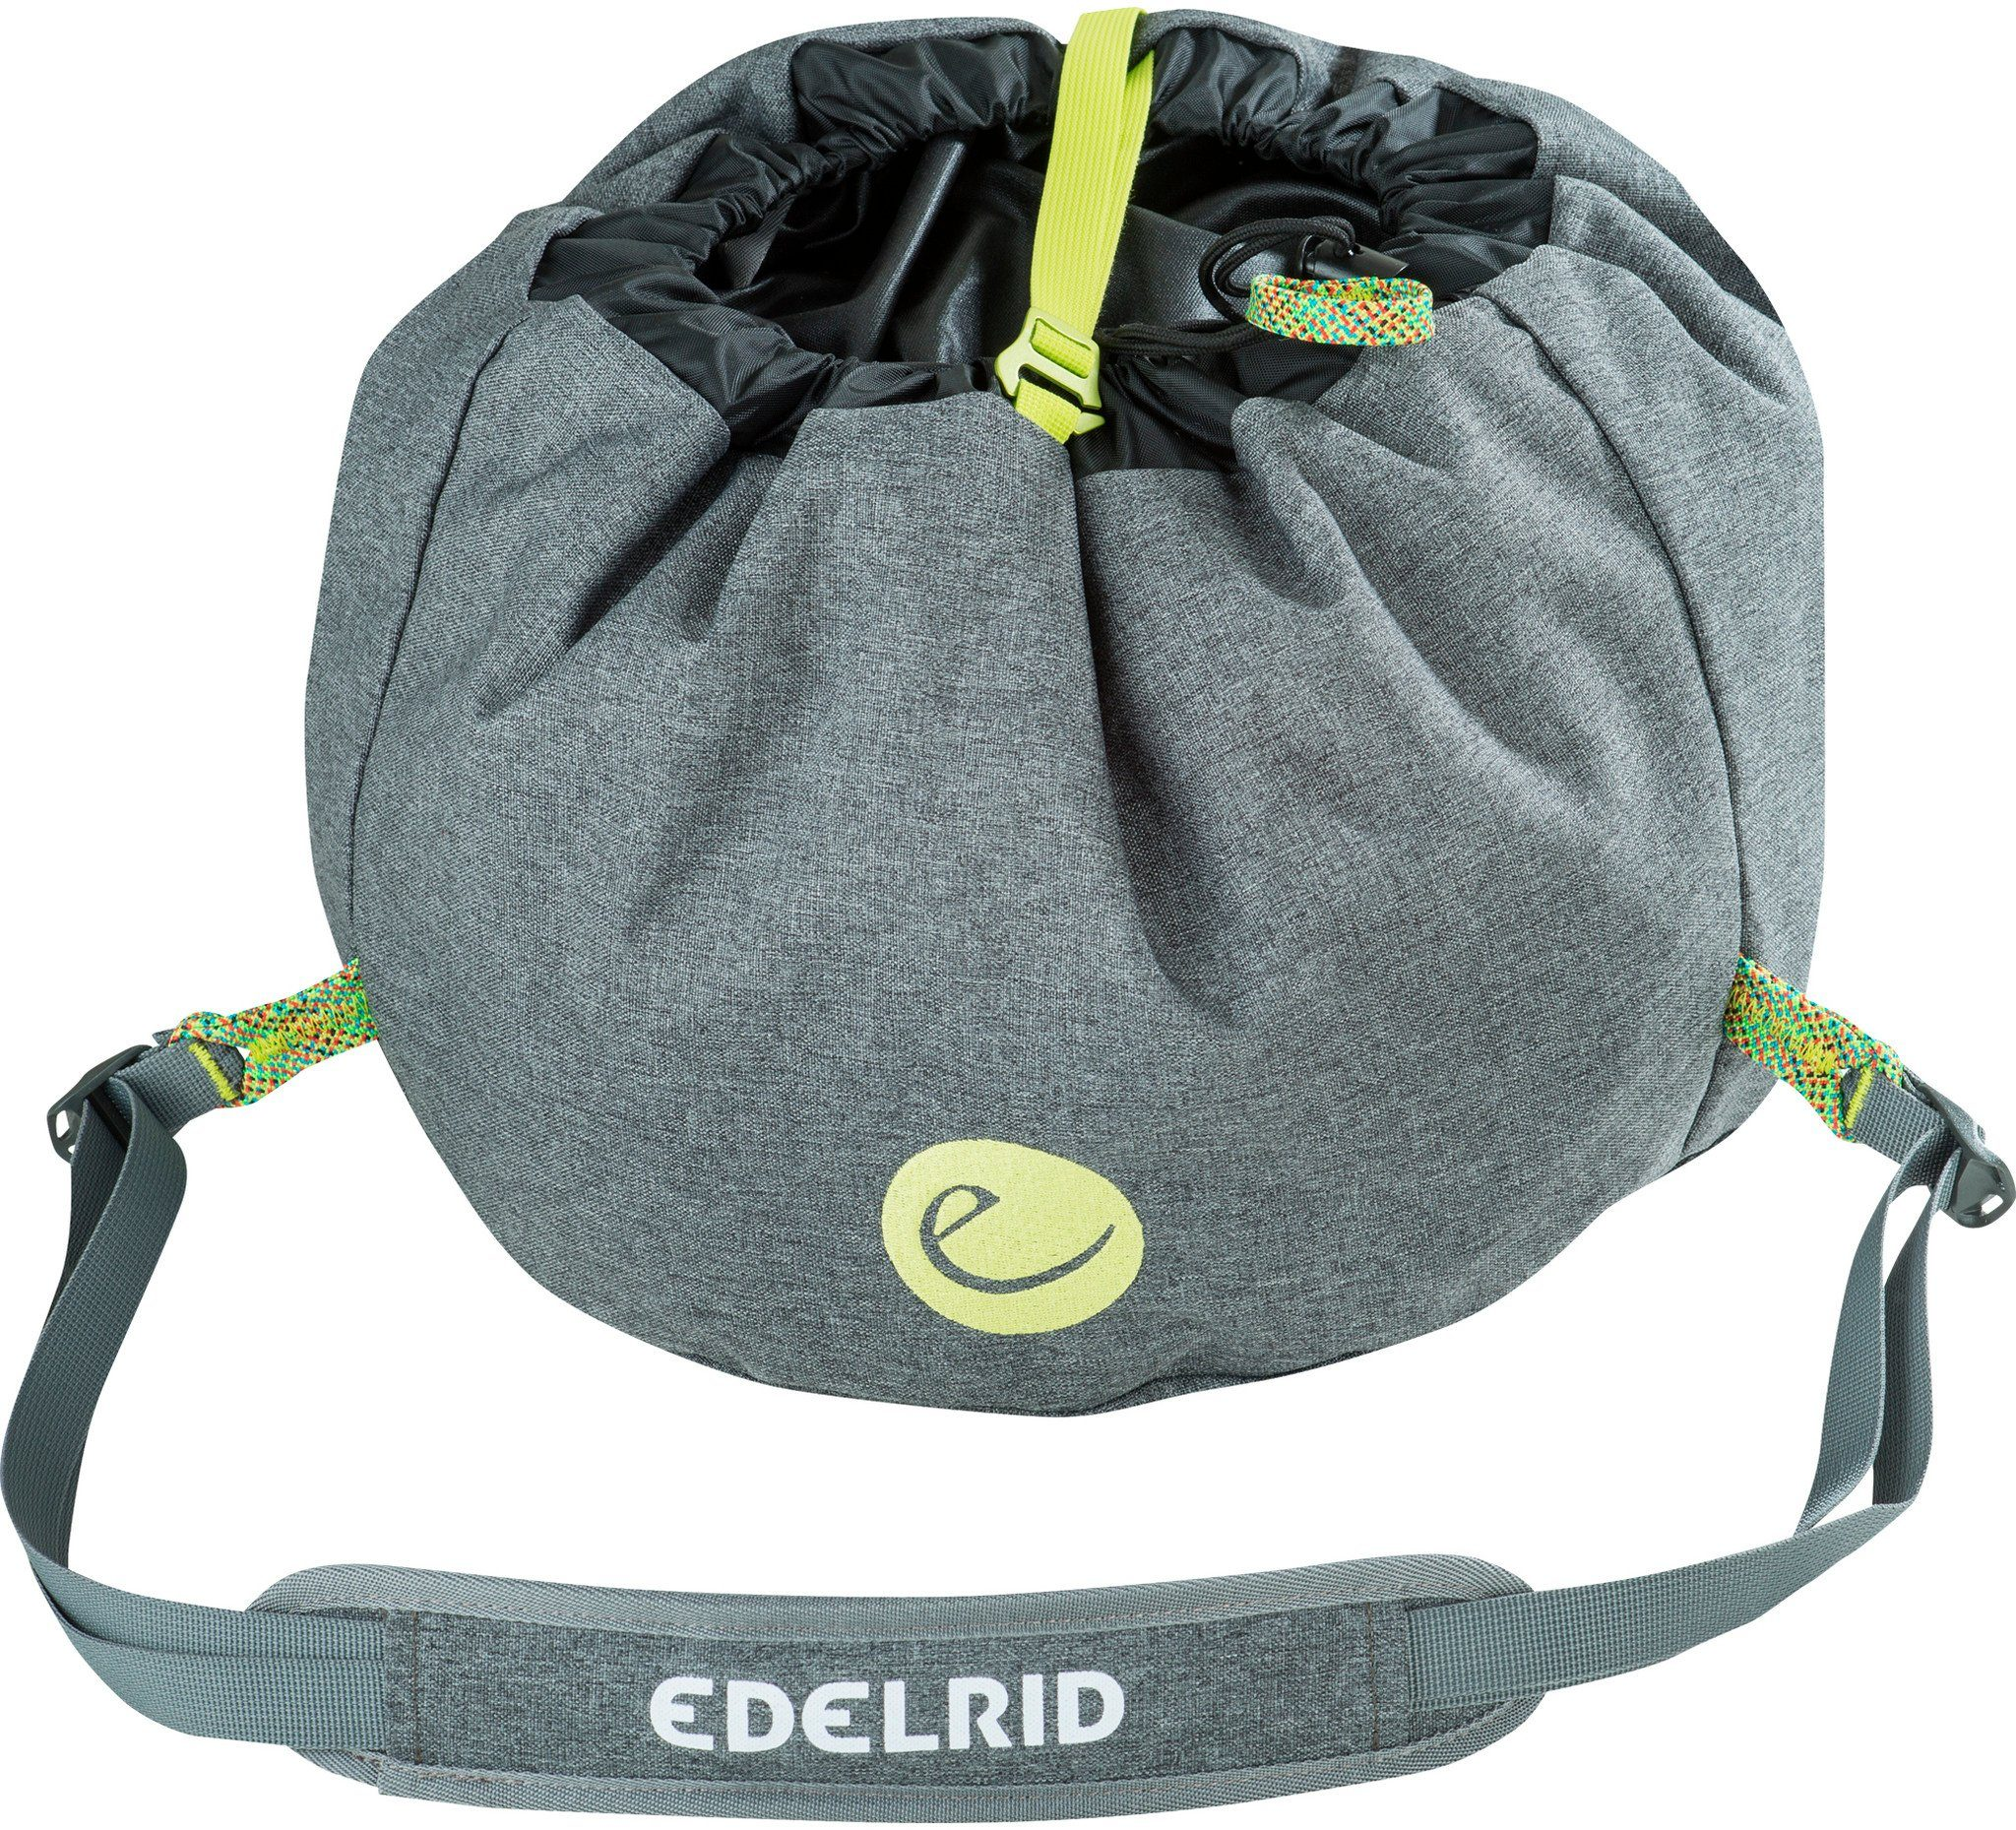 Edelrid Kletterrucksack »Caddy II Rope Bag«